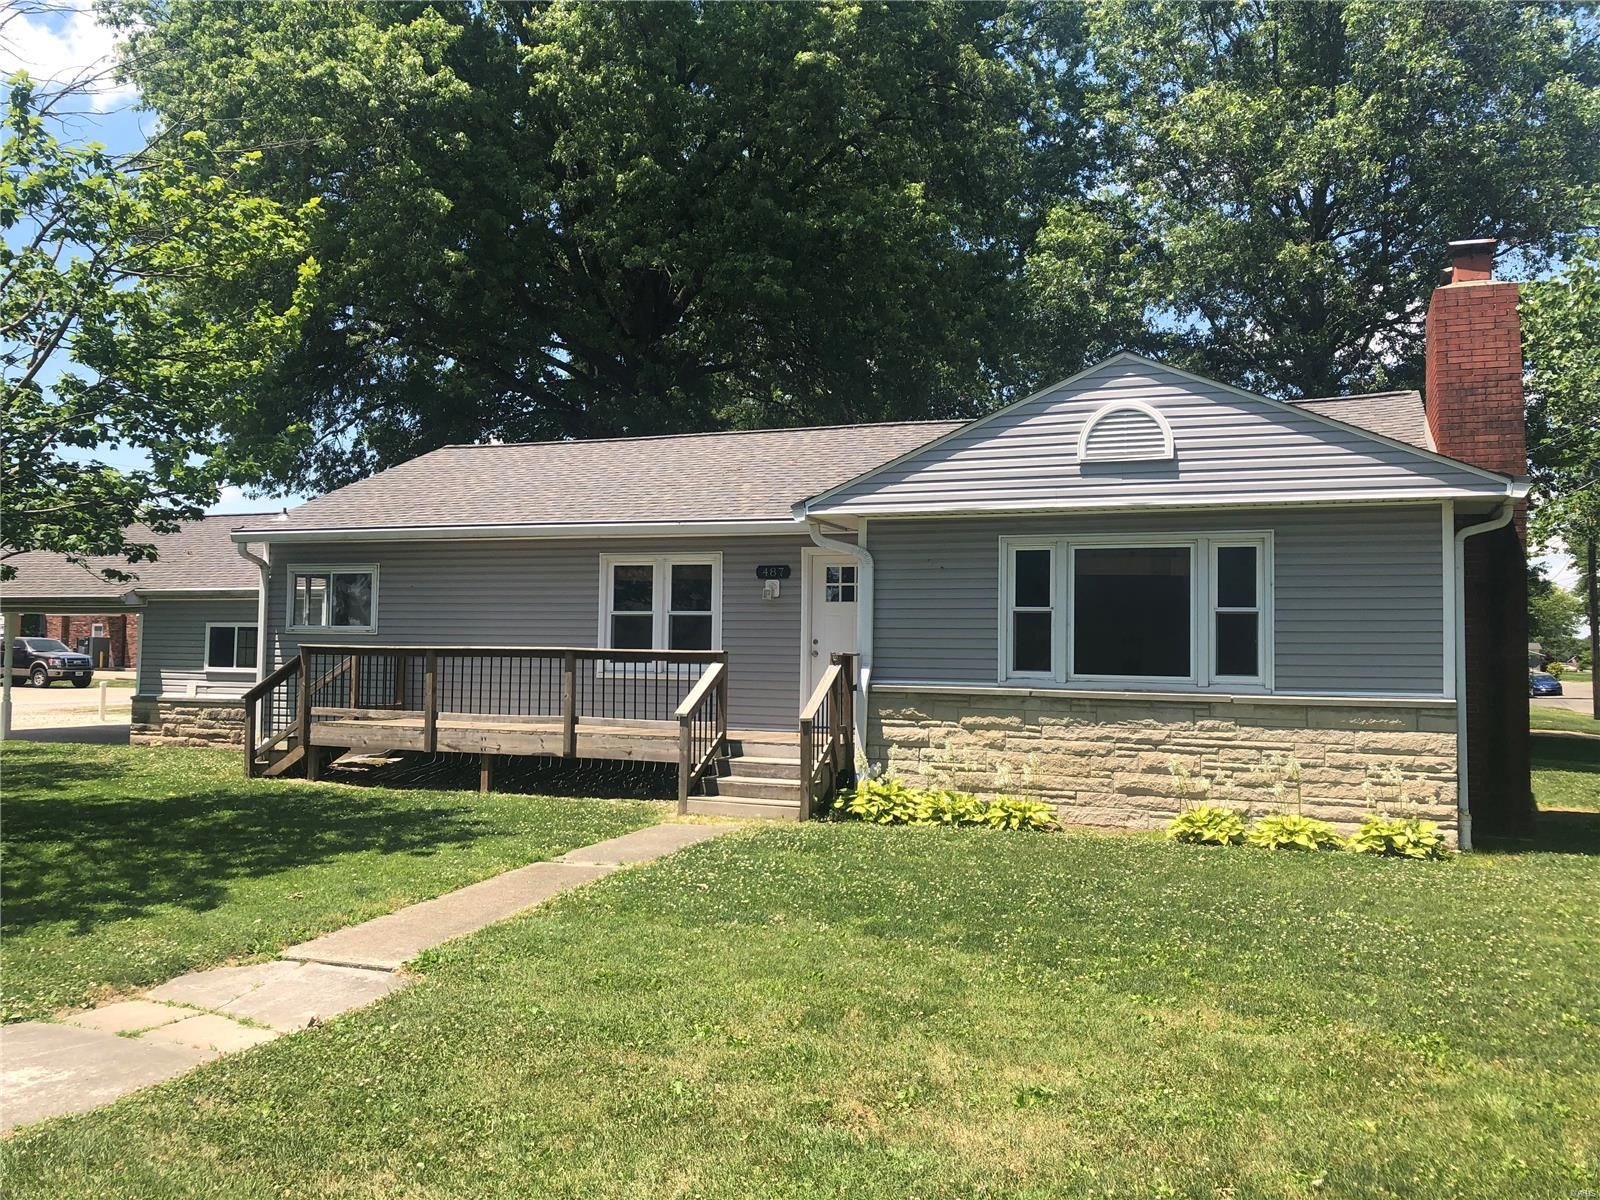 487 N Cherry Street Property Photo - Breese, IL real estate listing